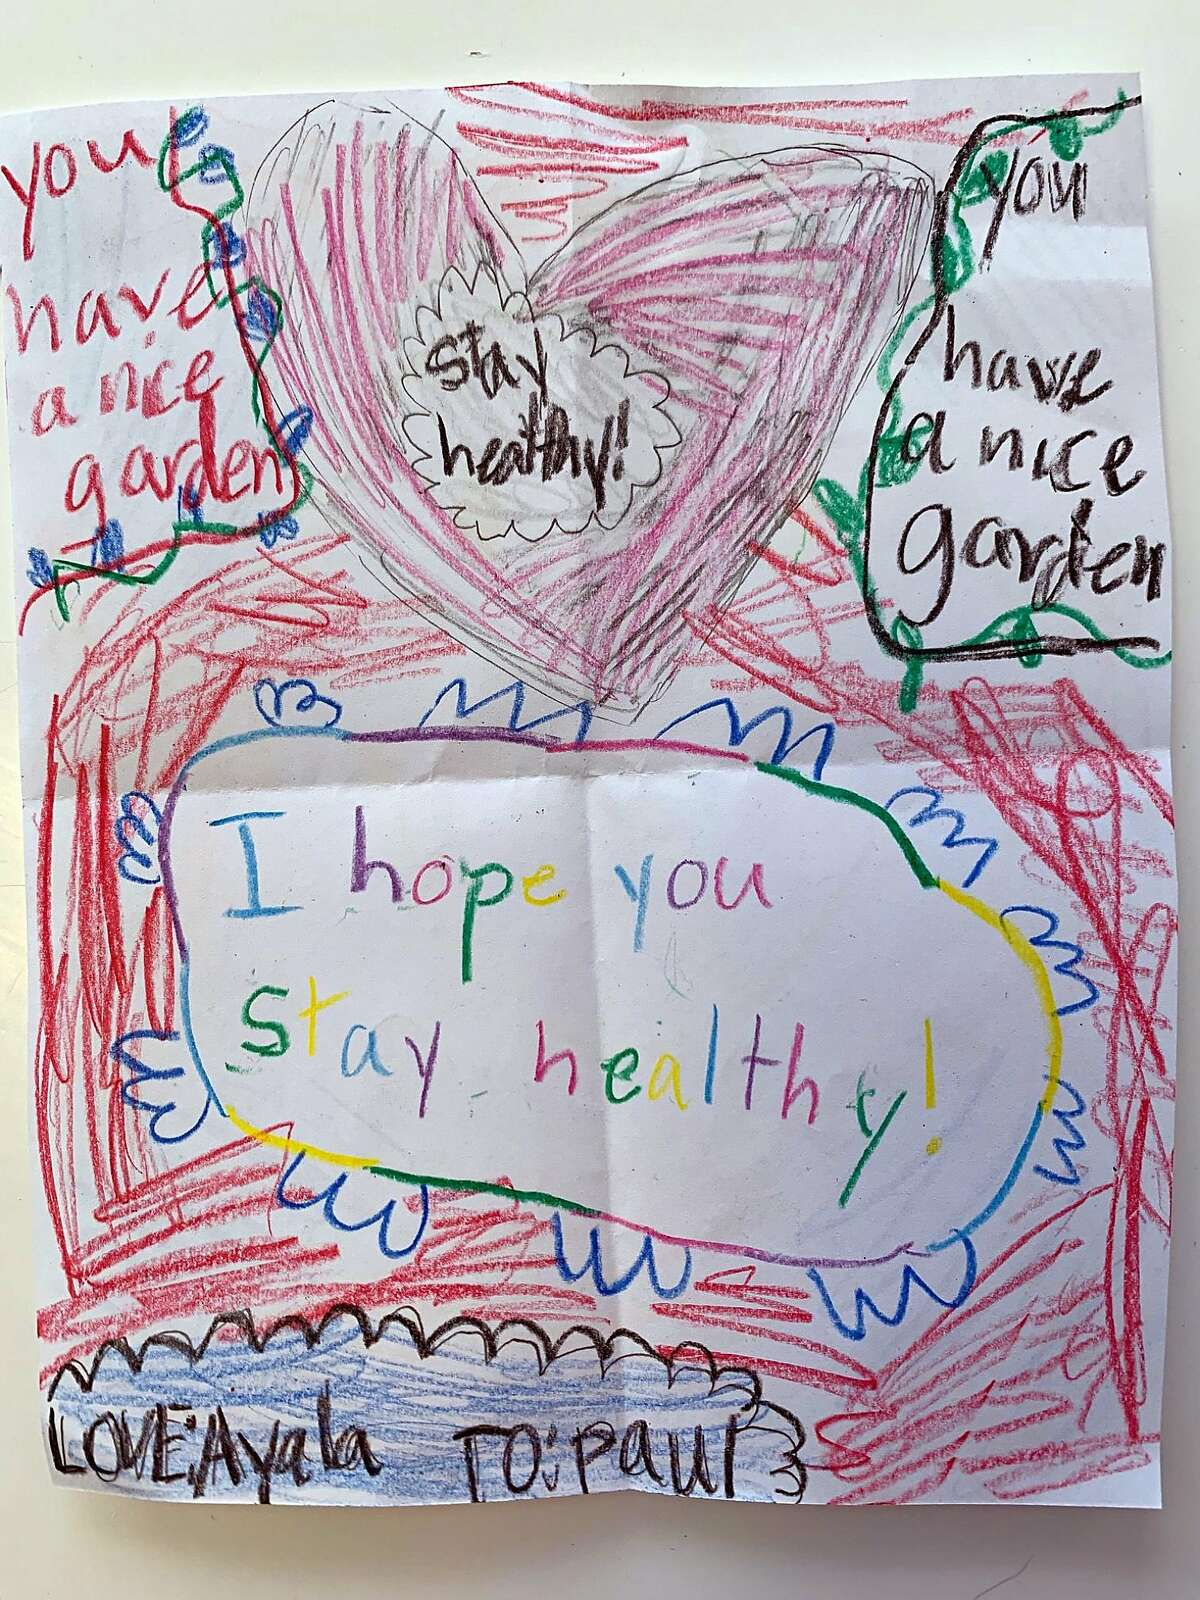 Get-well drawing received by Paul Preston of Berkeley, who is 69 and under self-quarantine, from his 8-year-old neighbor, Ayala.